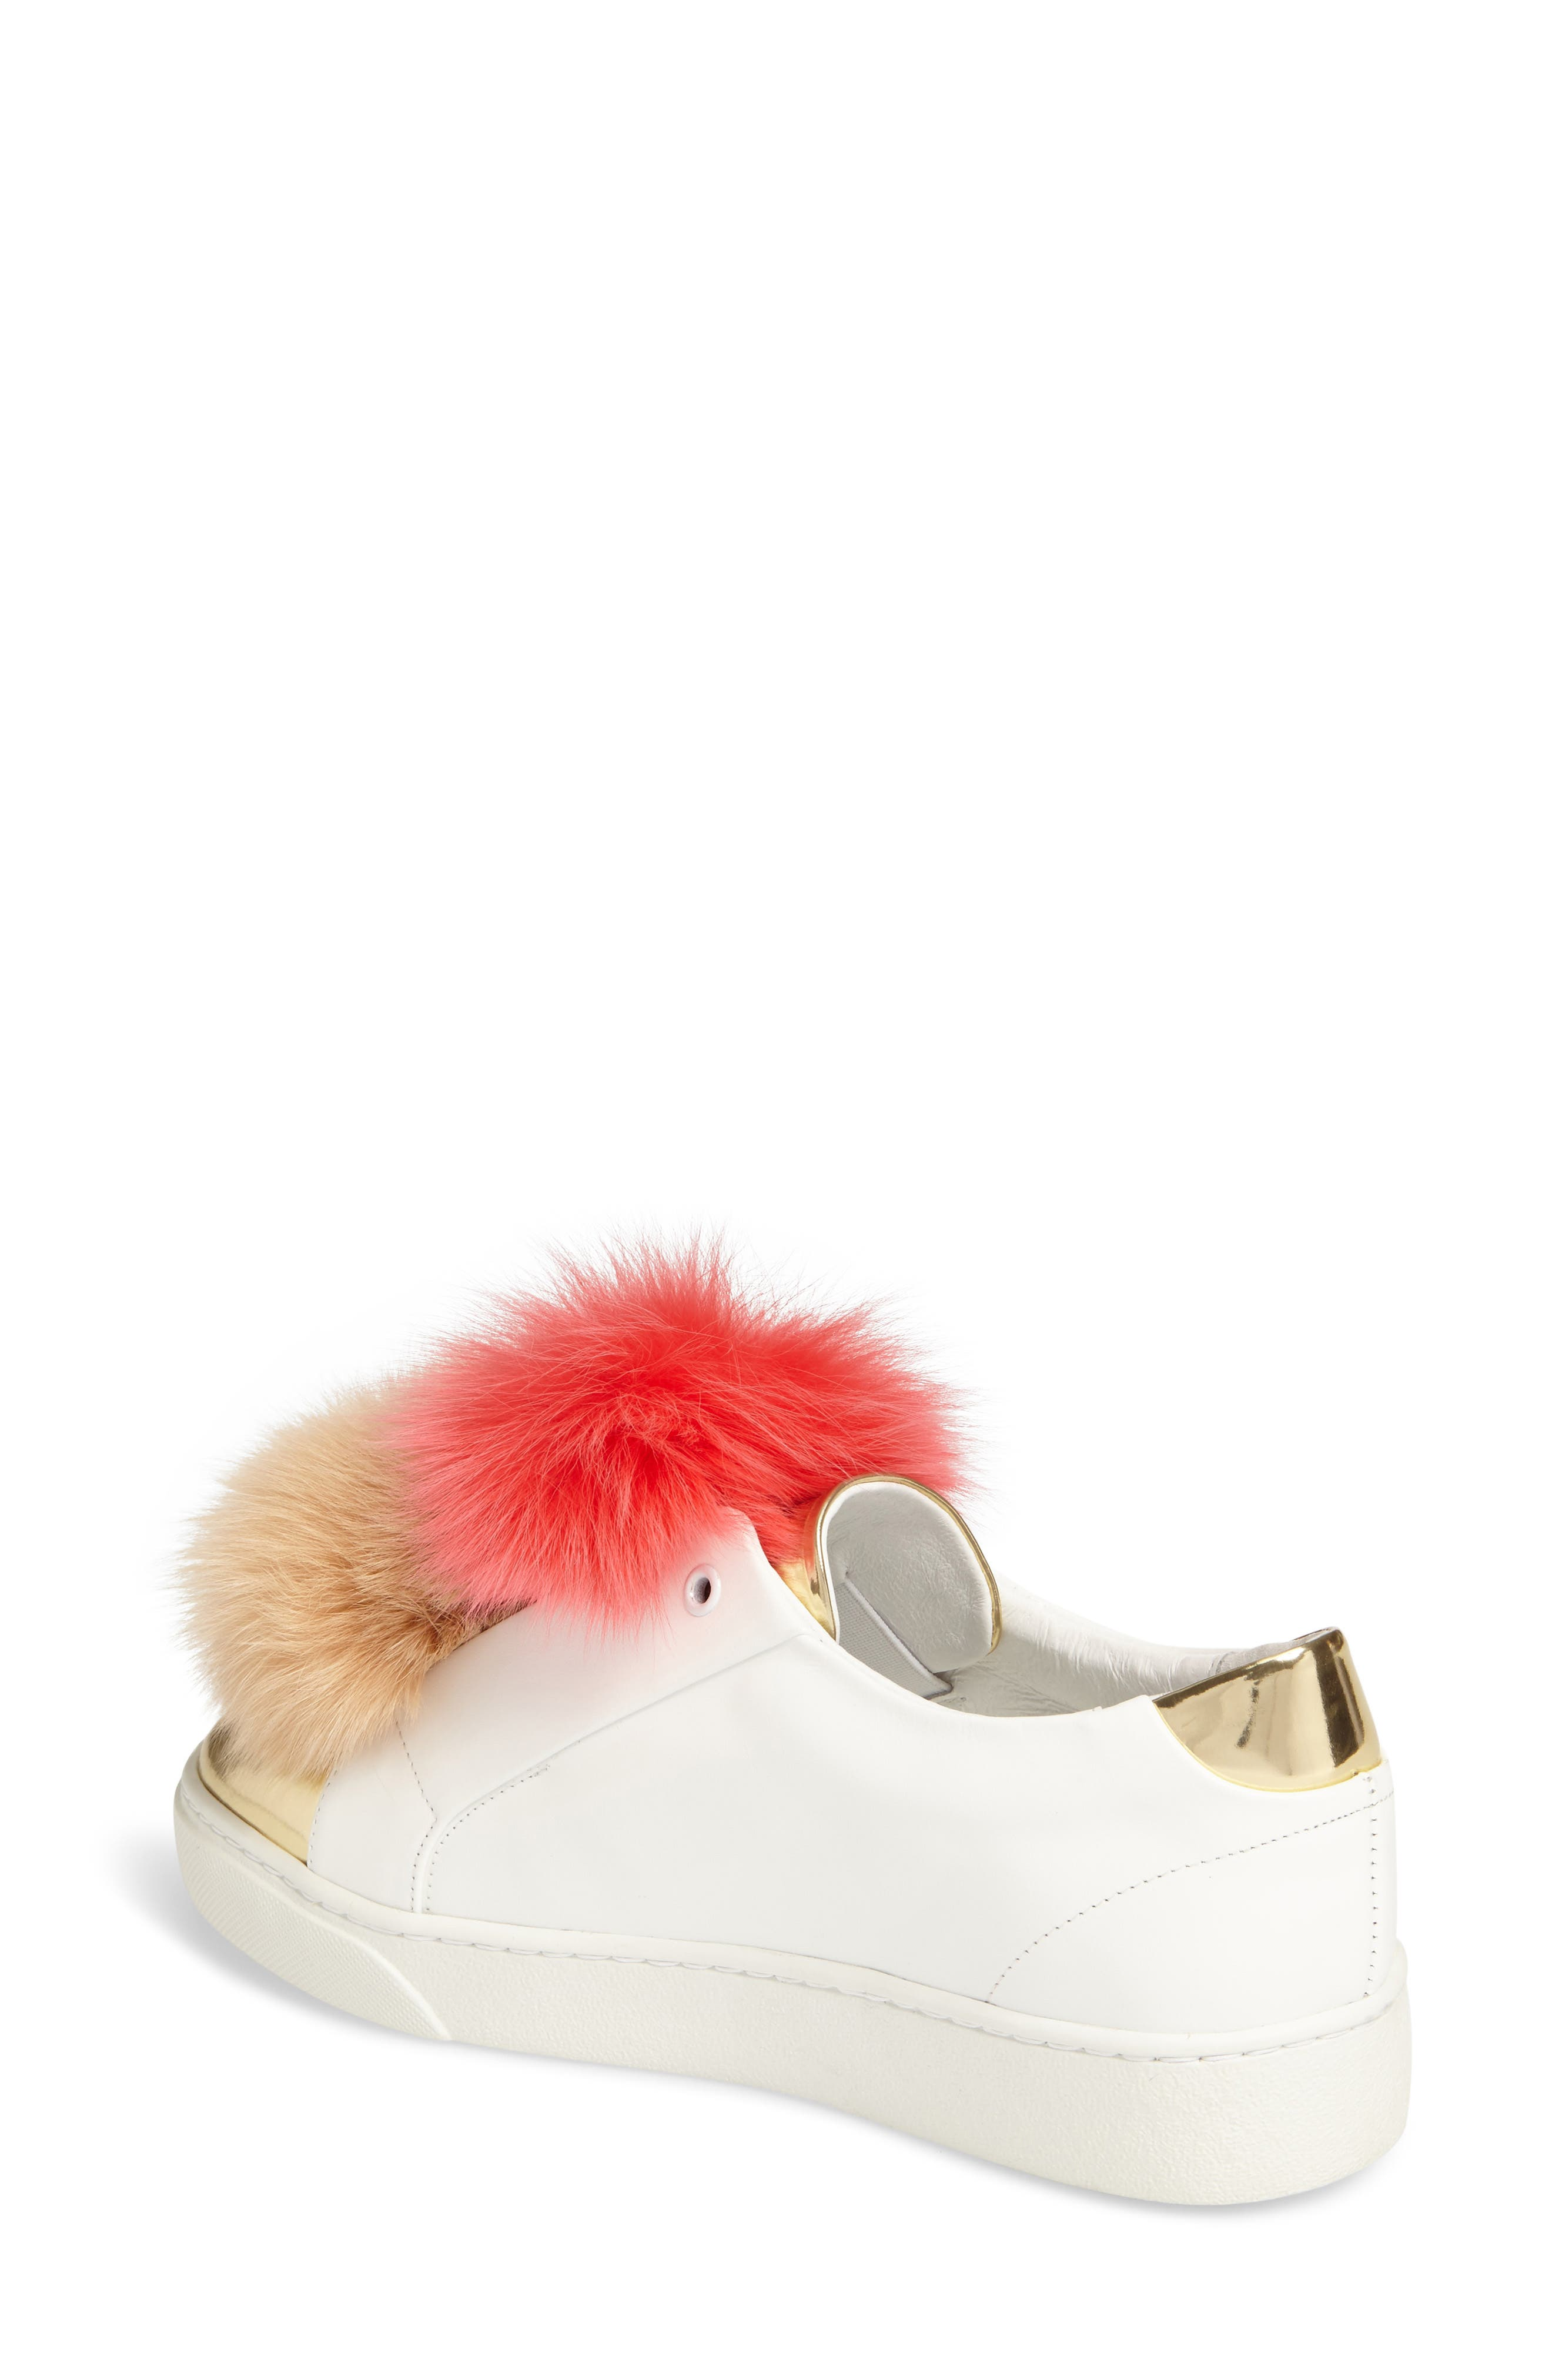 Coco Genuine Fox Fur Trim Platfrom Sneaker,                             Alternate thumbnail 2, color,                             Pink/Camel Leather